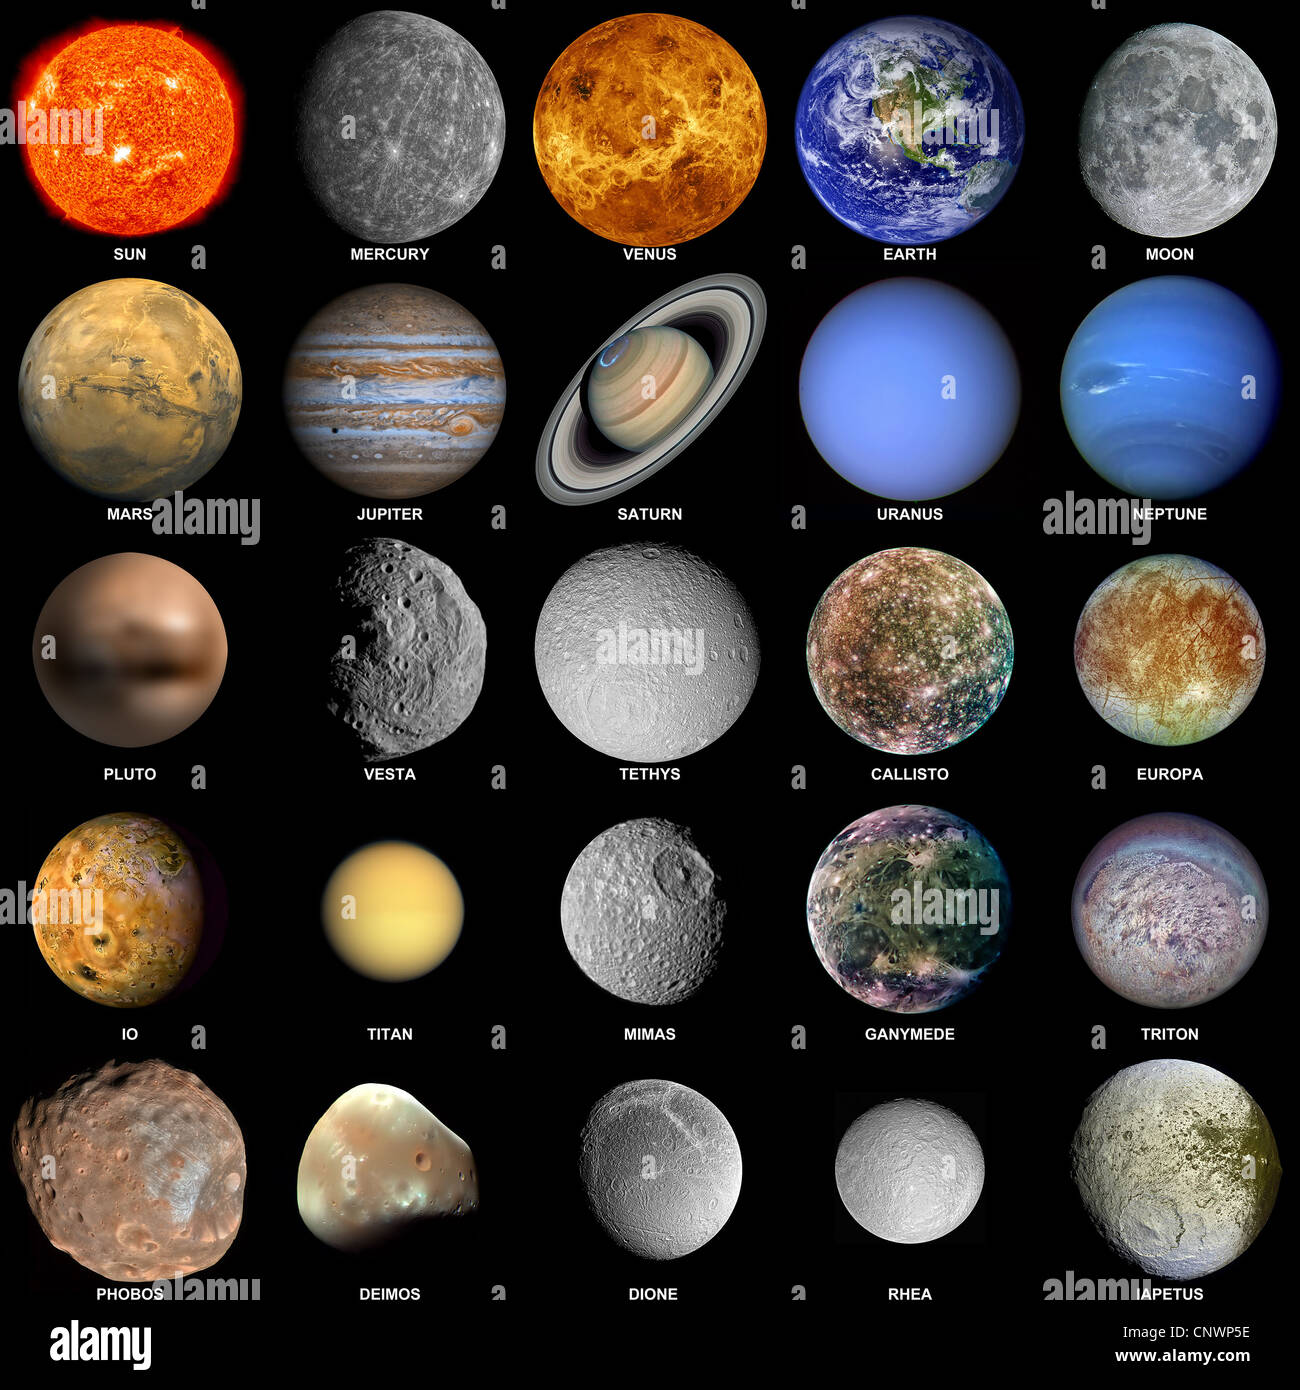 Space Pictures - Hubble Images and Night Sky